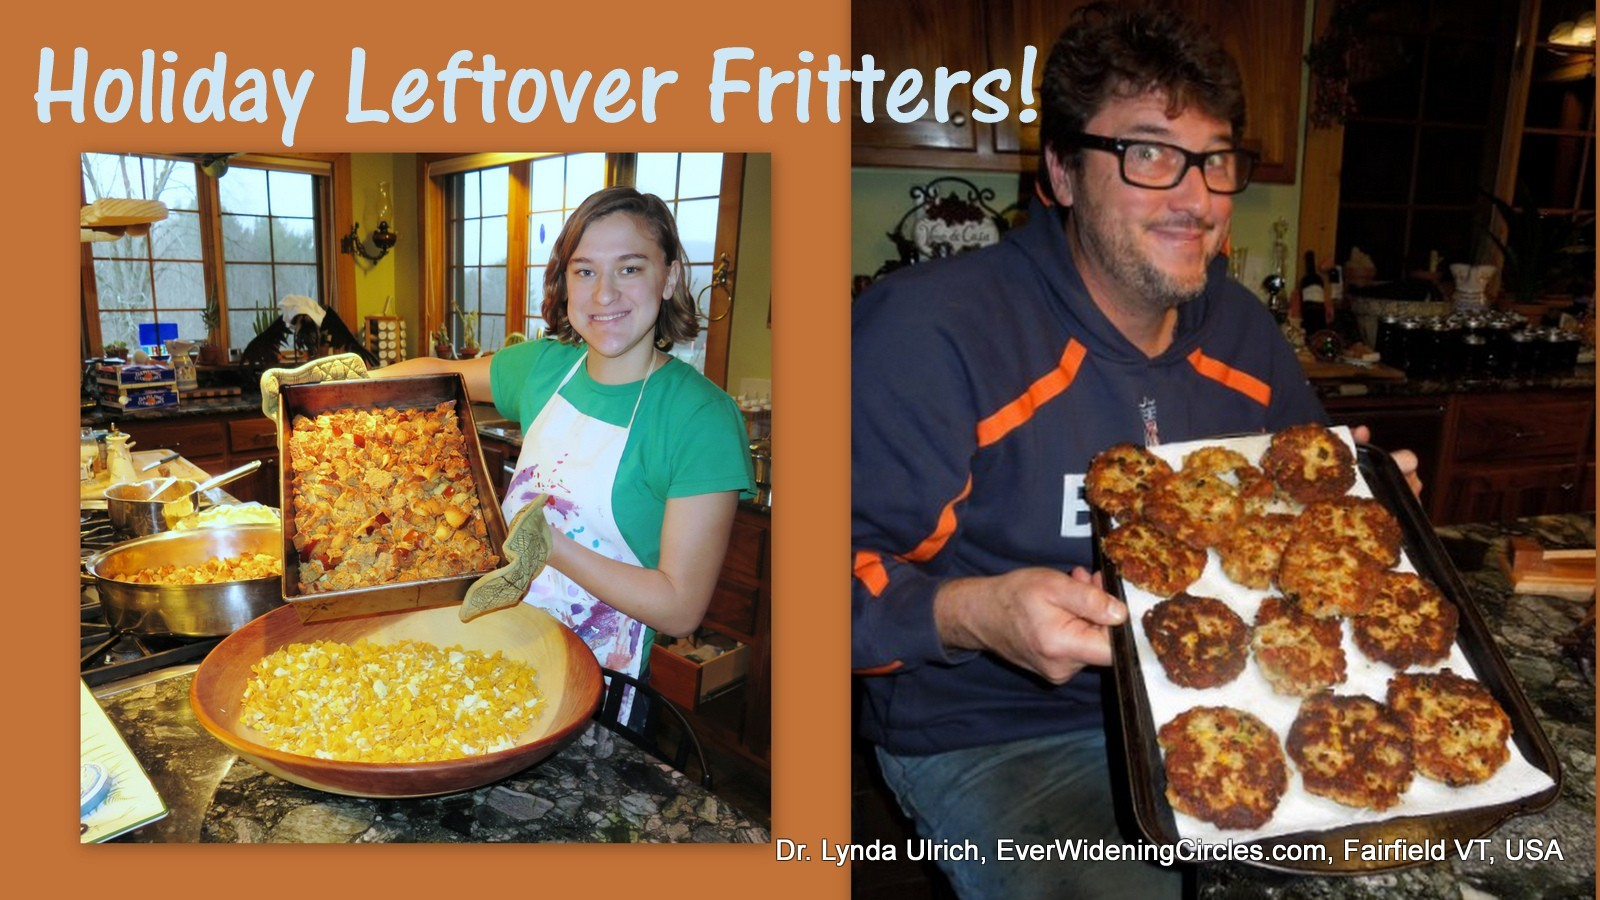 Image: Recipe for Thanksgiving Leftovers